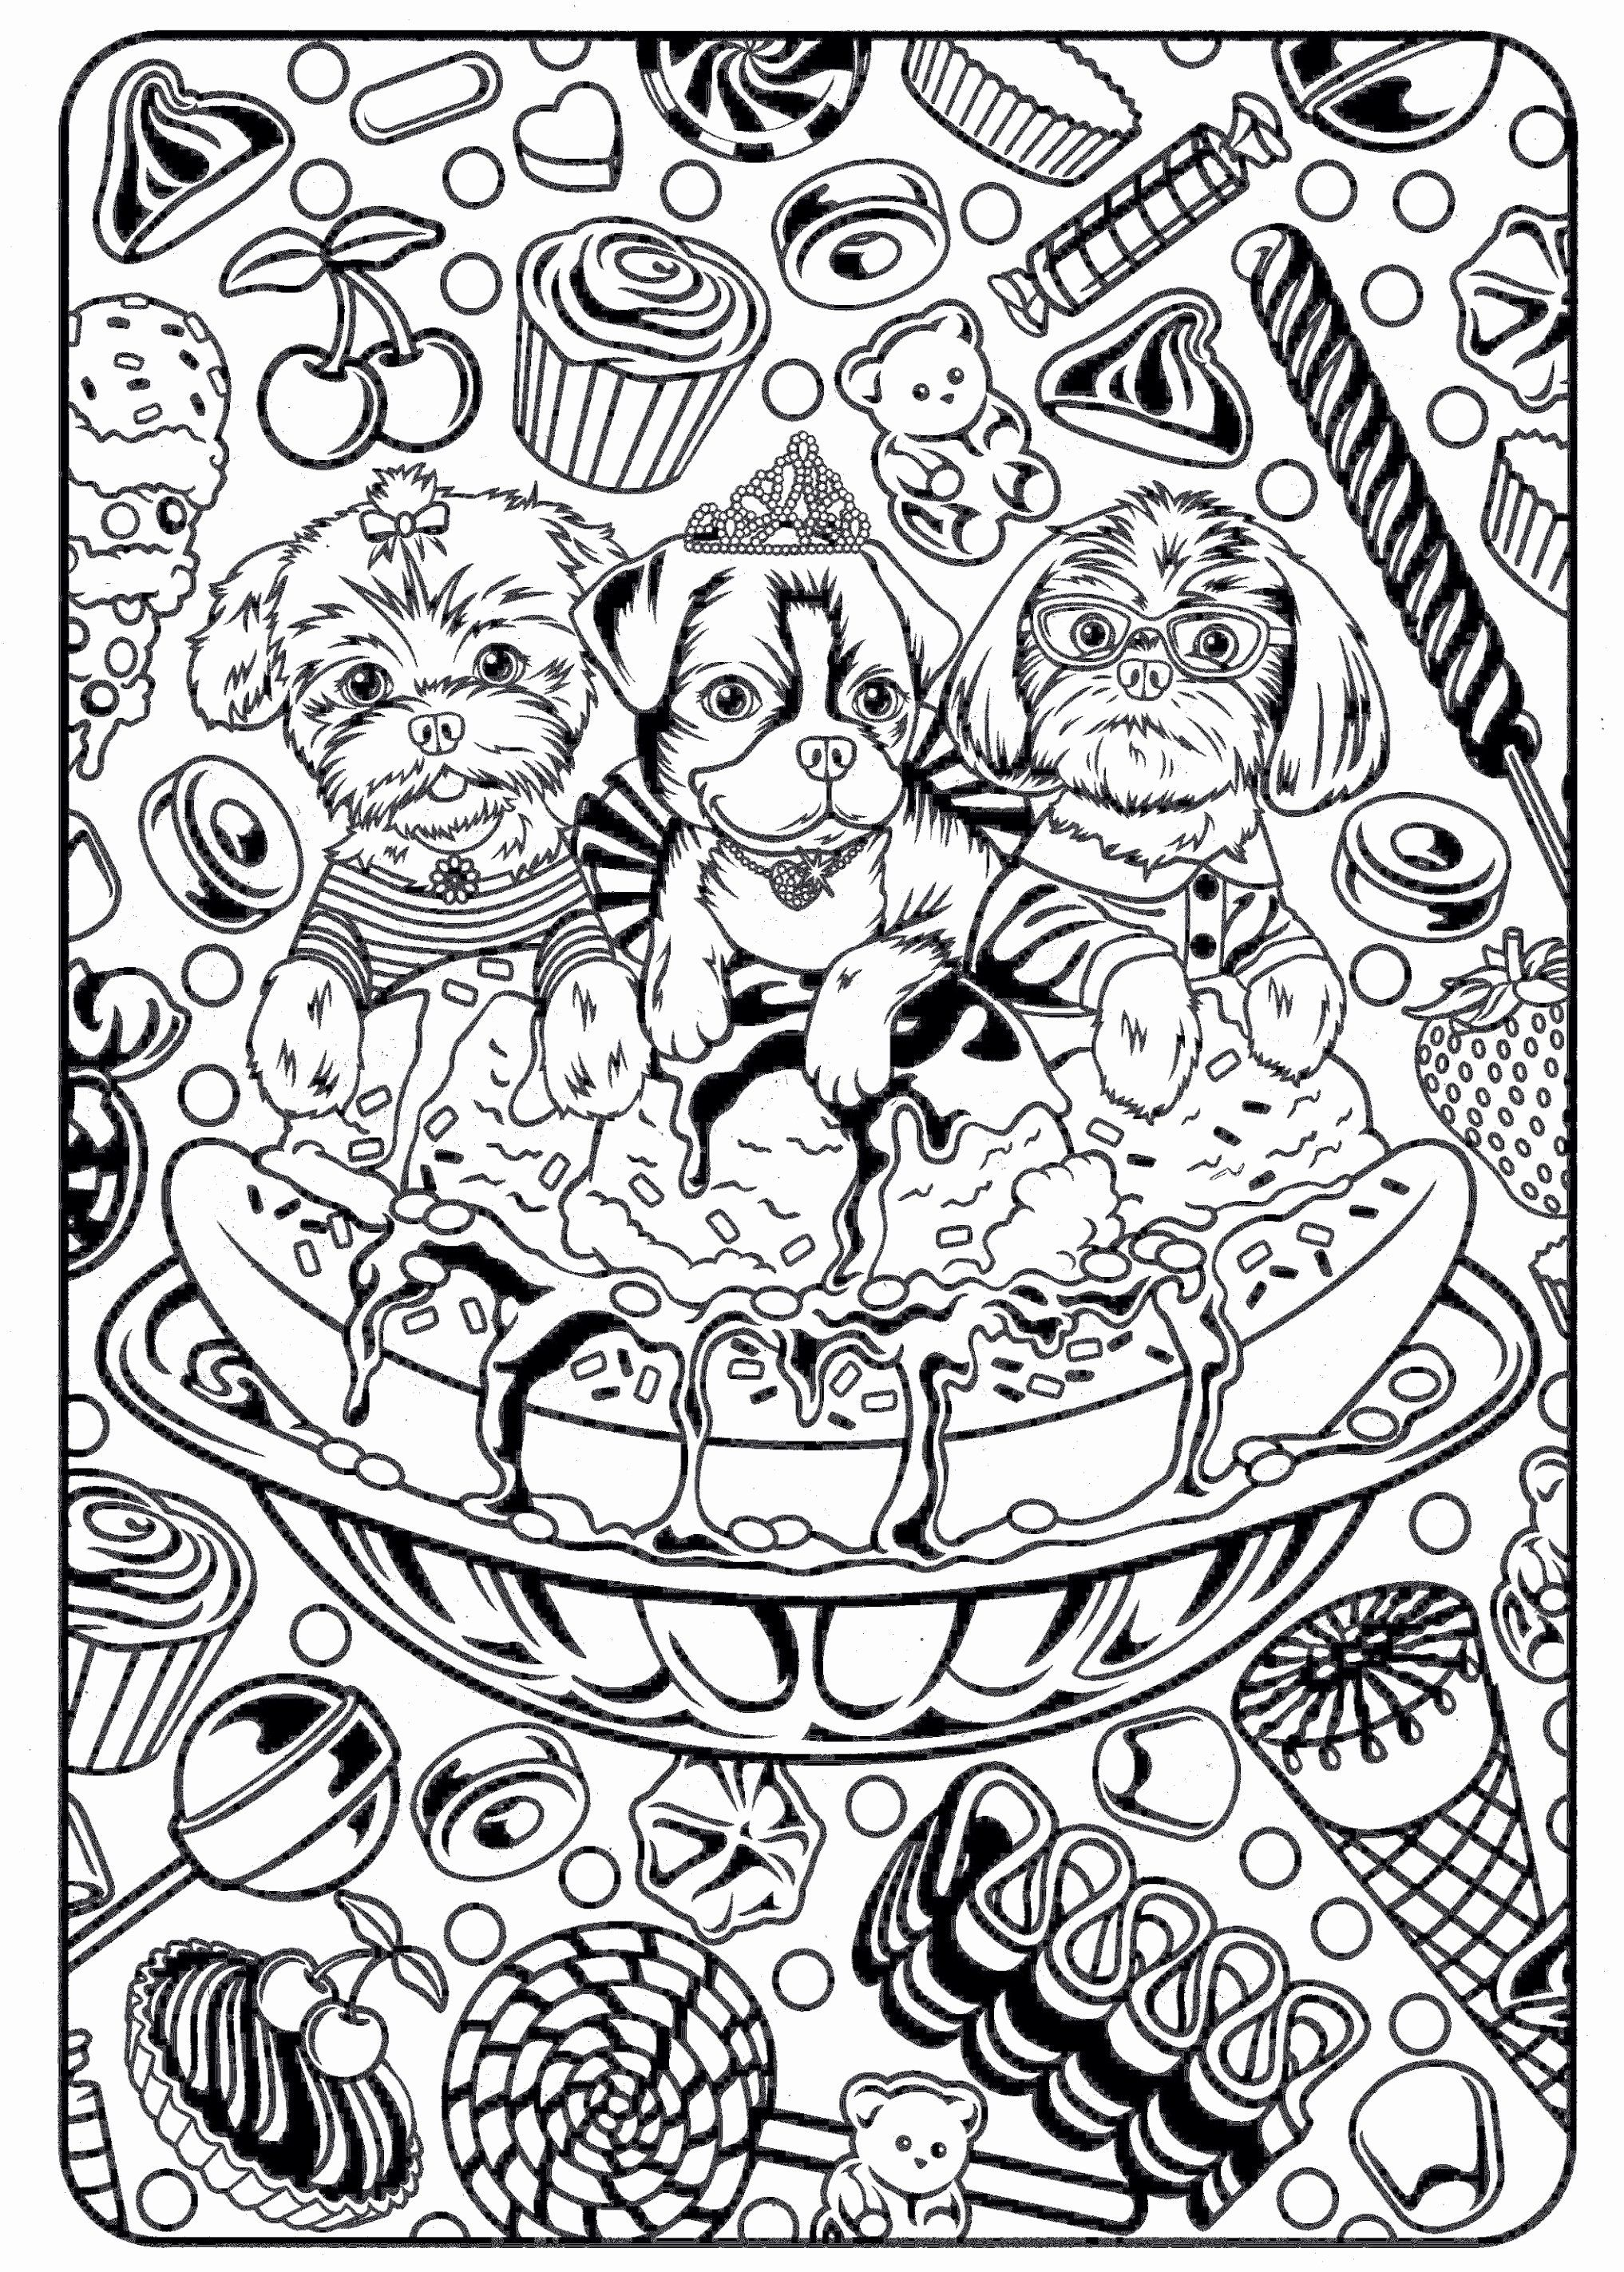 Kid Friendly Coloring Pages Awesome Minion Coloring Pages Colorpages Kids Color Pages New Fall In 2020 Space Coloring Pages Pokemon Coloring Pages Fall Coloring Pages